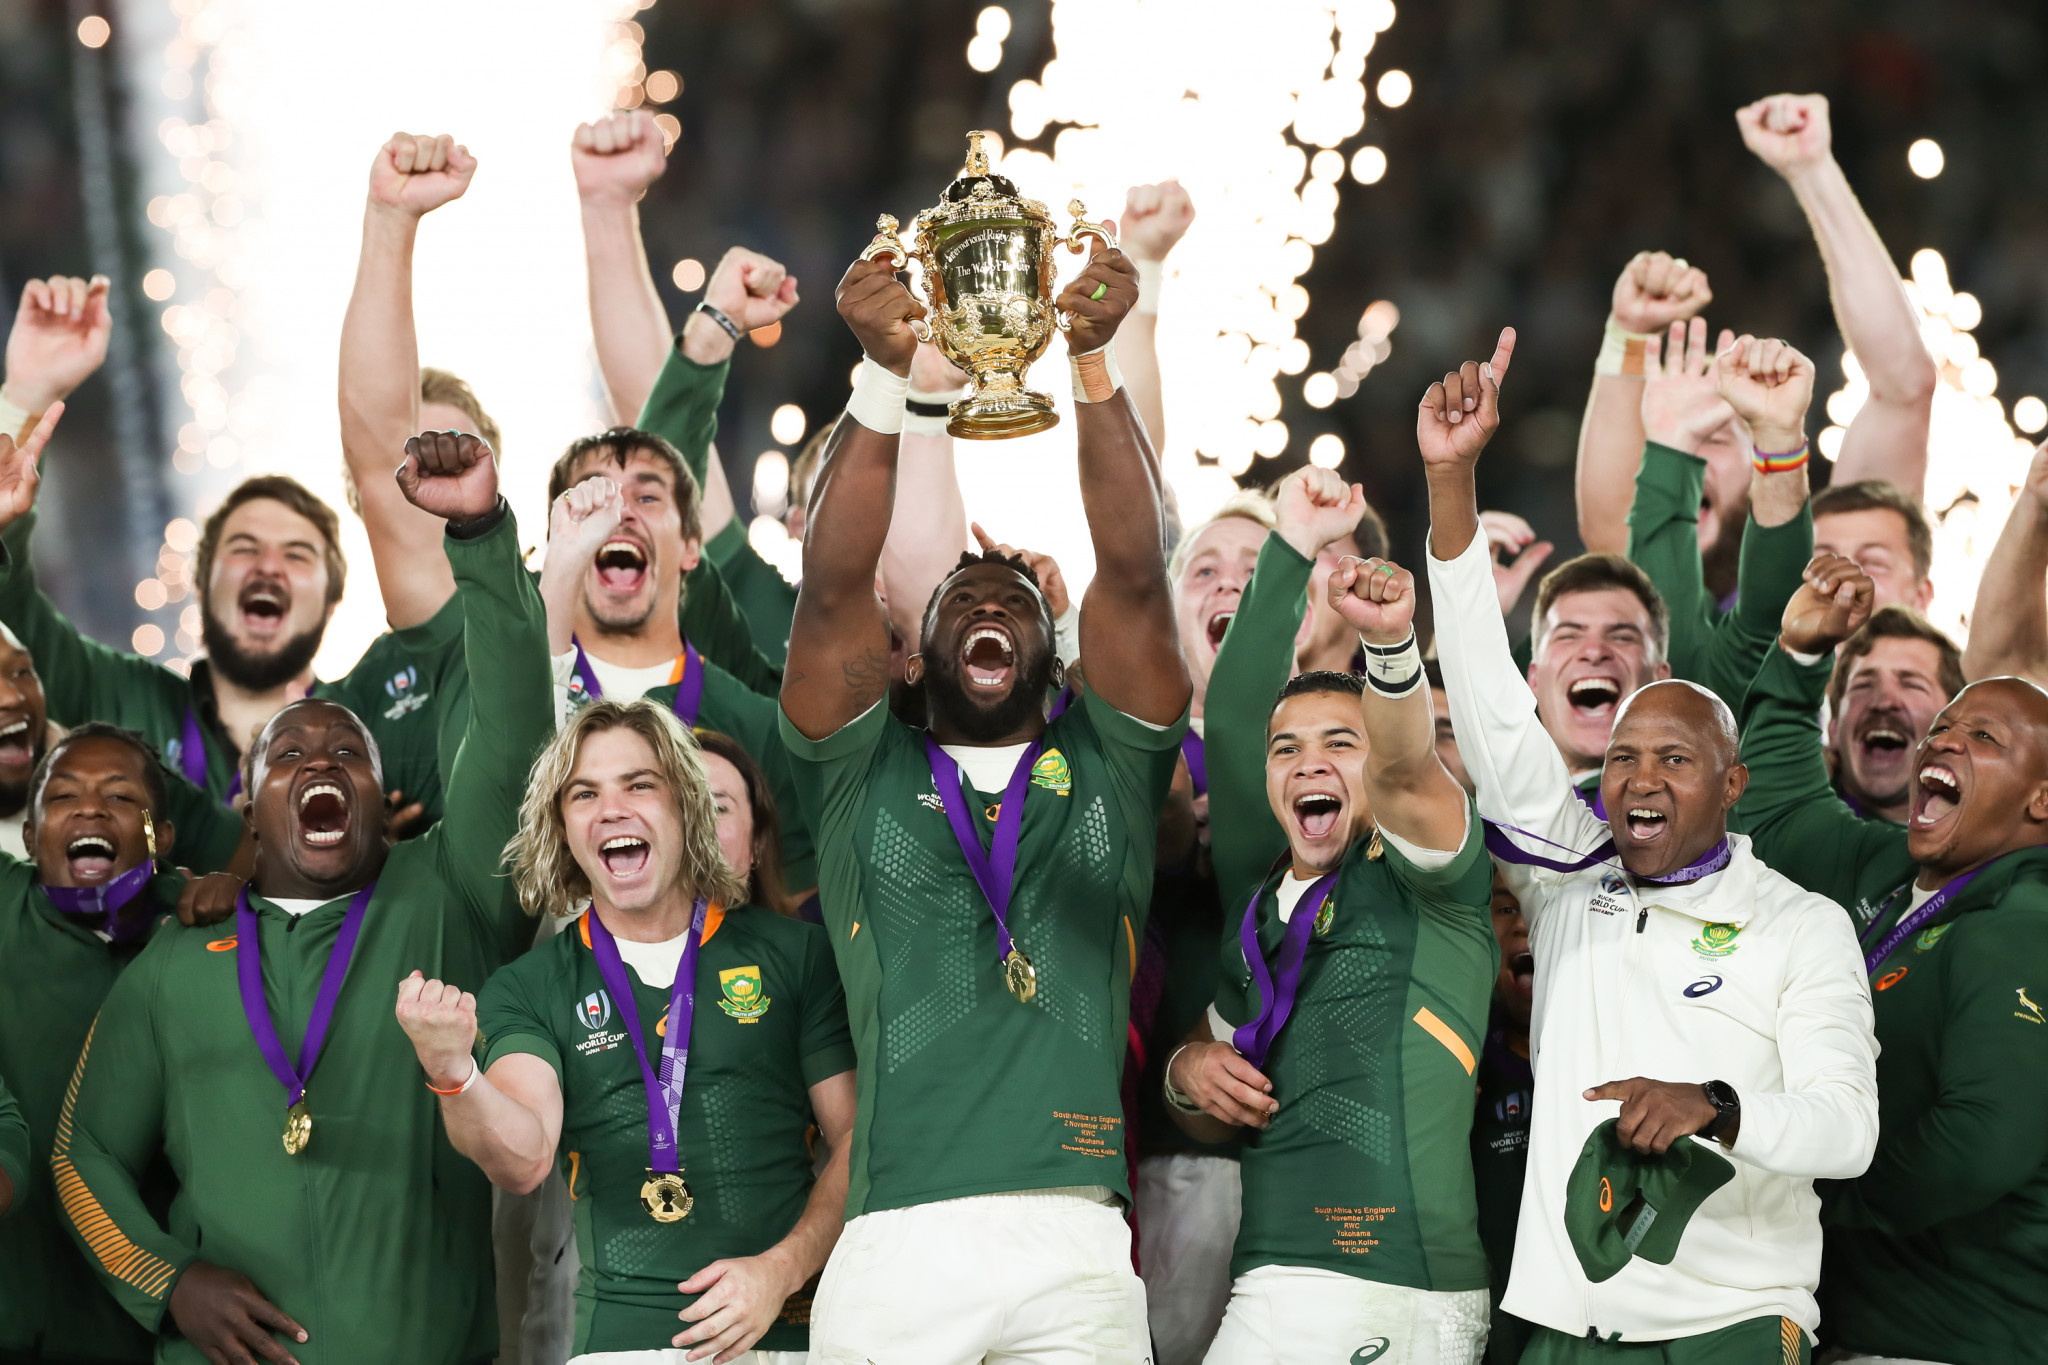 South Africa earn third Rugby World Cup title with ruthless defeat of England